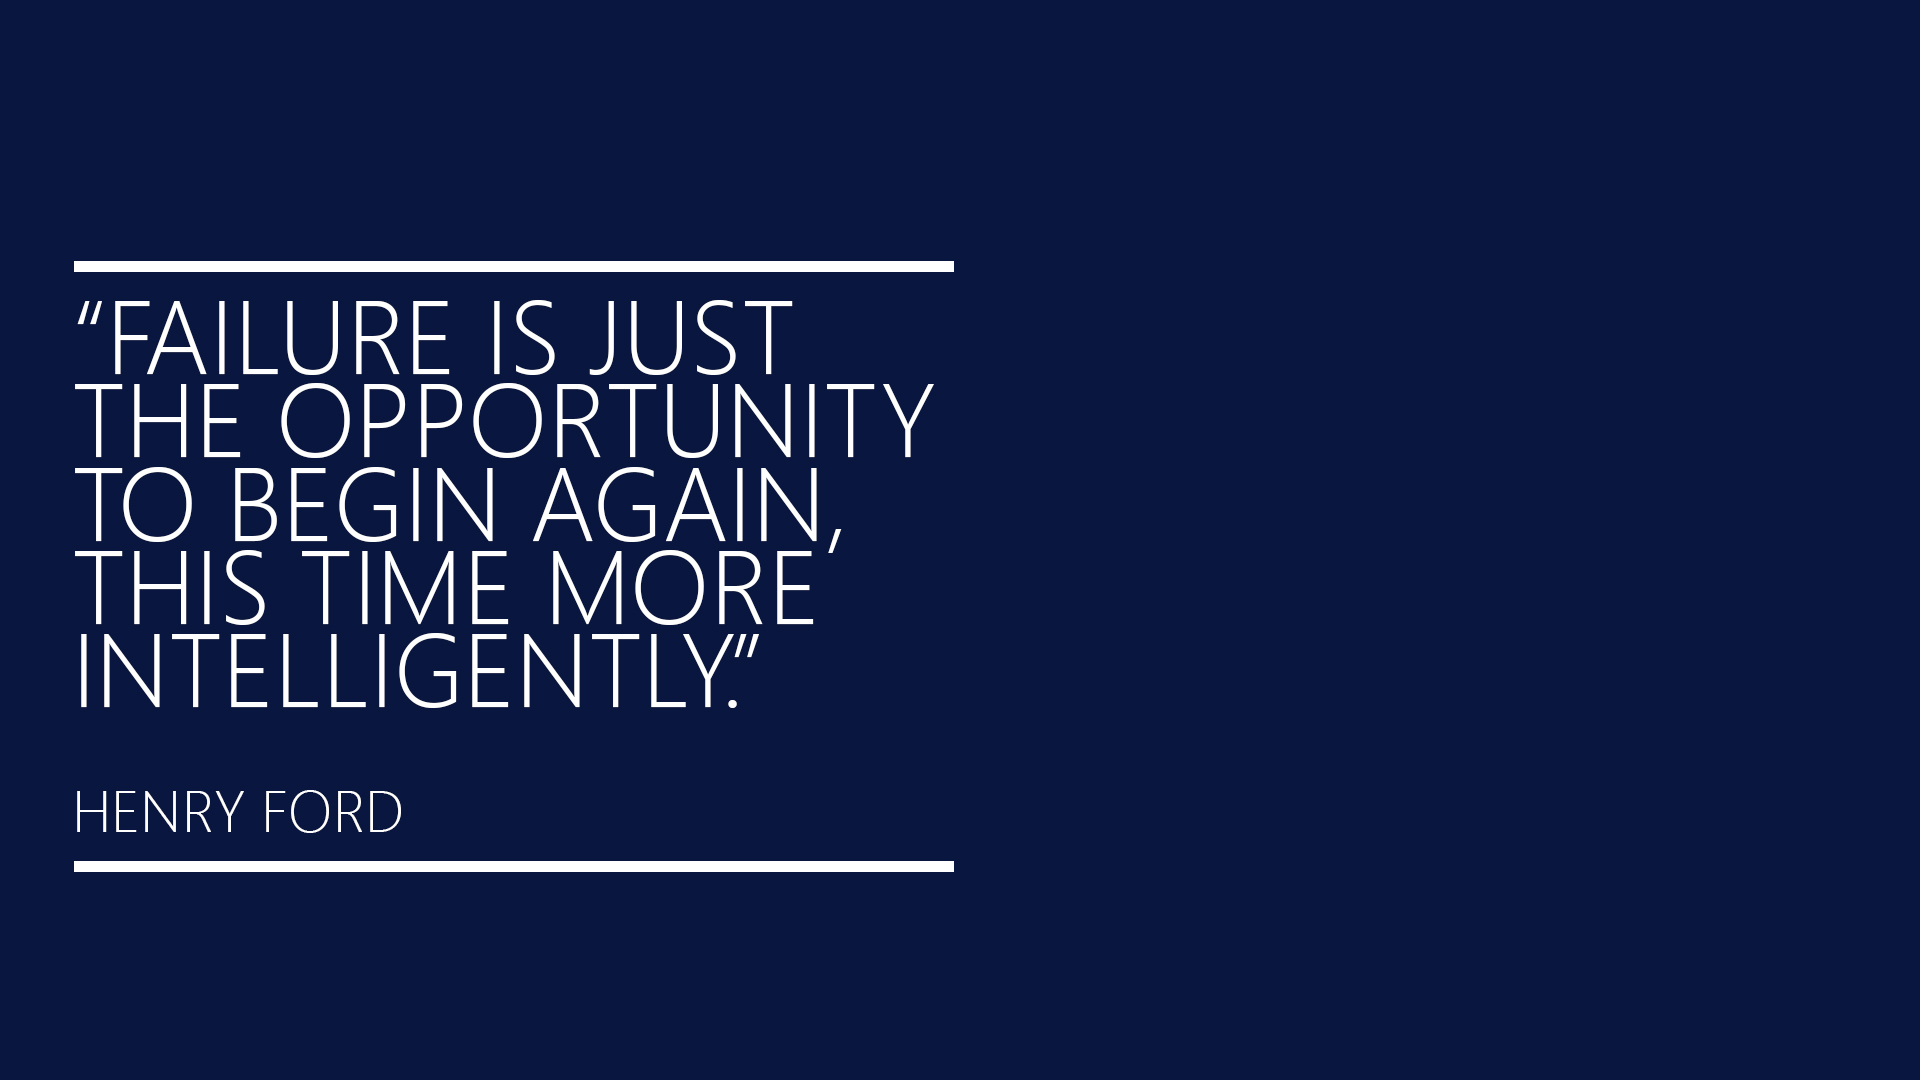 Failure is just the opportunity to begin again, this time more intelligently. Henry Ford